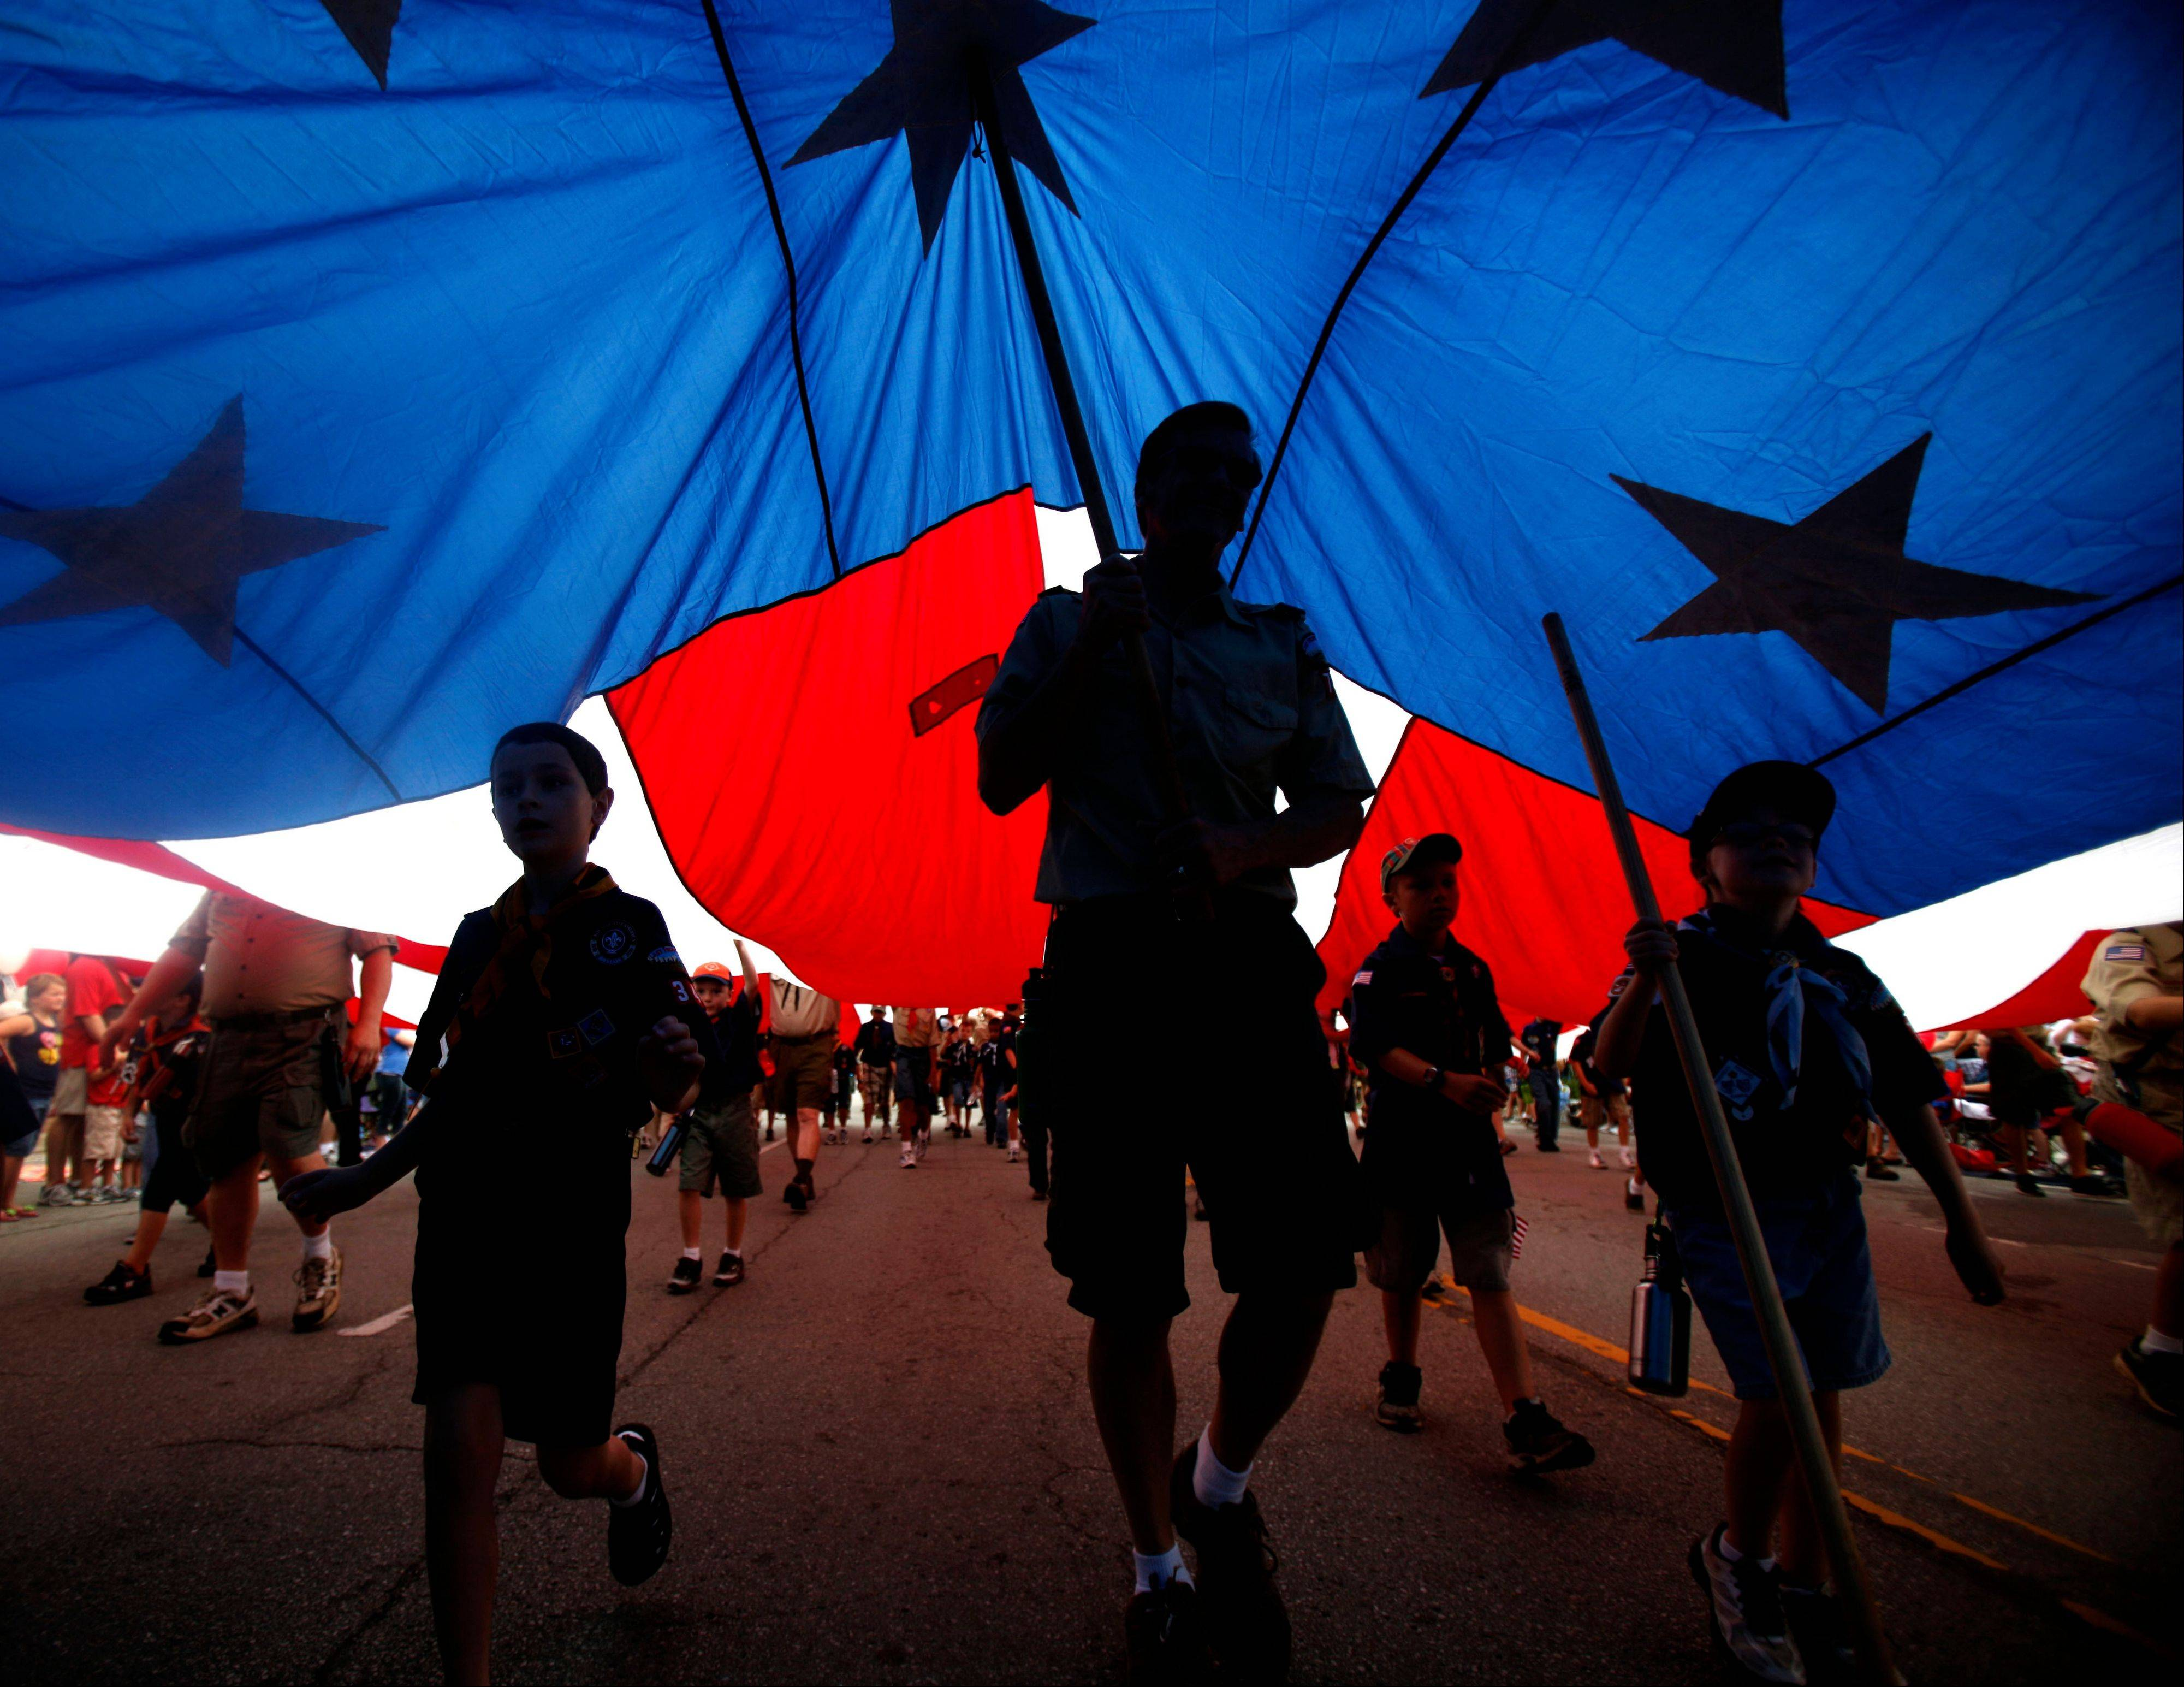 Boy Scouts of America and Cub Scout troops carry a large American flag during the LibertyFest Fourth of July parade in Edmond, Okla., Monday, July 4, 2011.